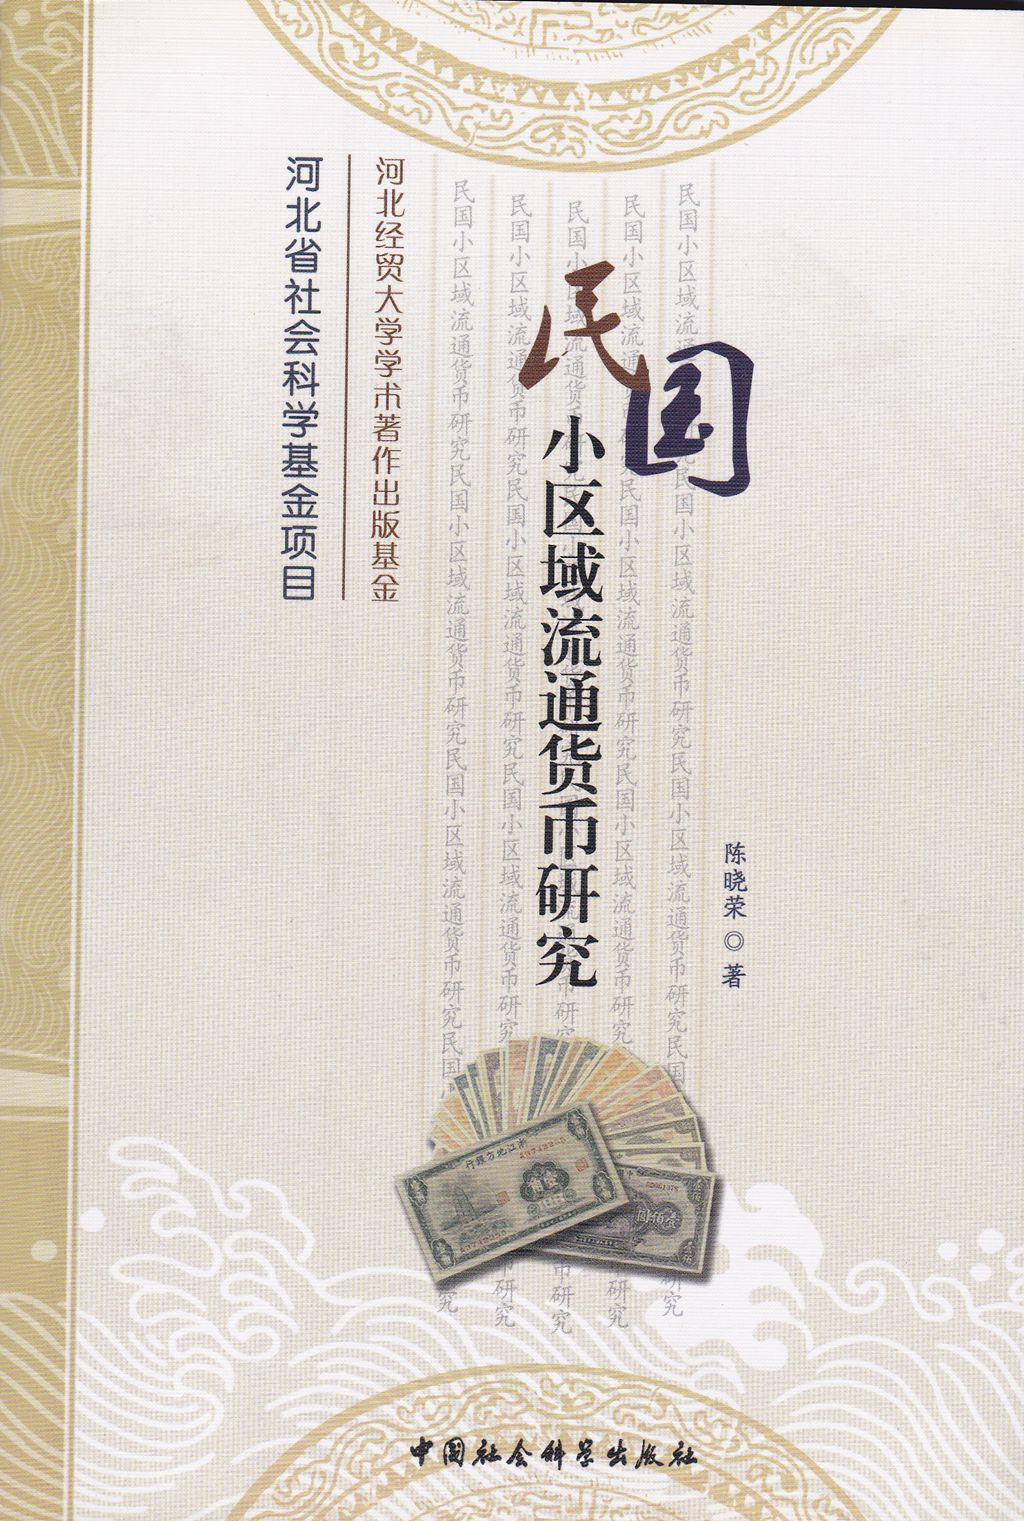 F2037, Study on Circulating-in-Small-Area Currency of China 1911-1949